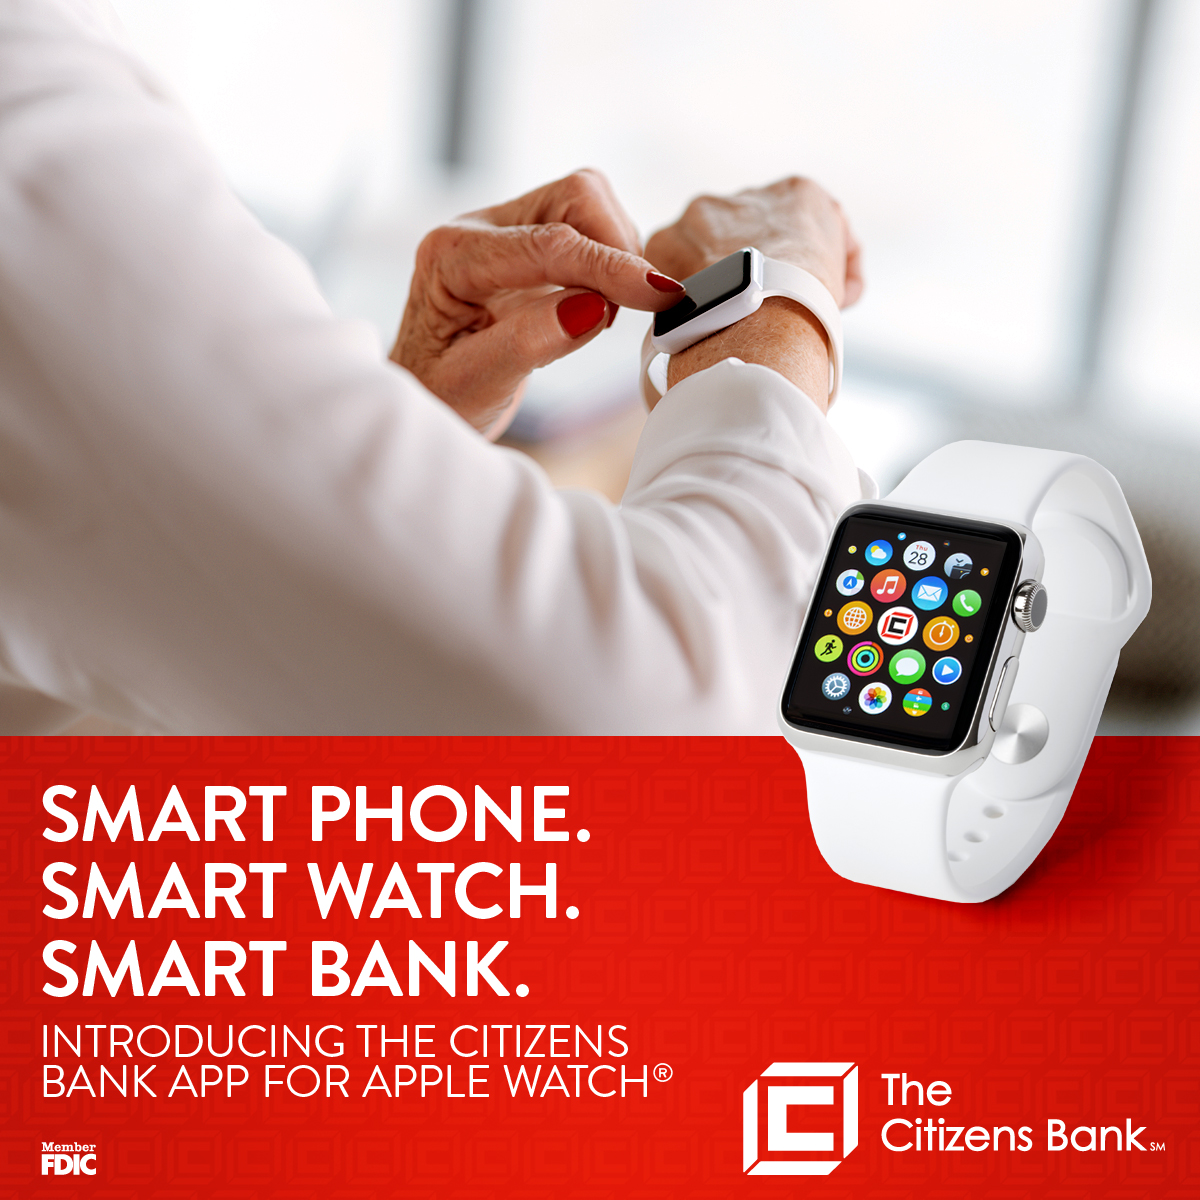 The Citizens Bank App for Apple Watch